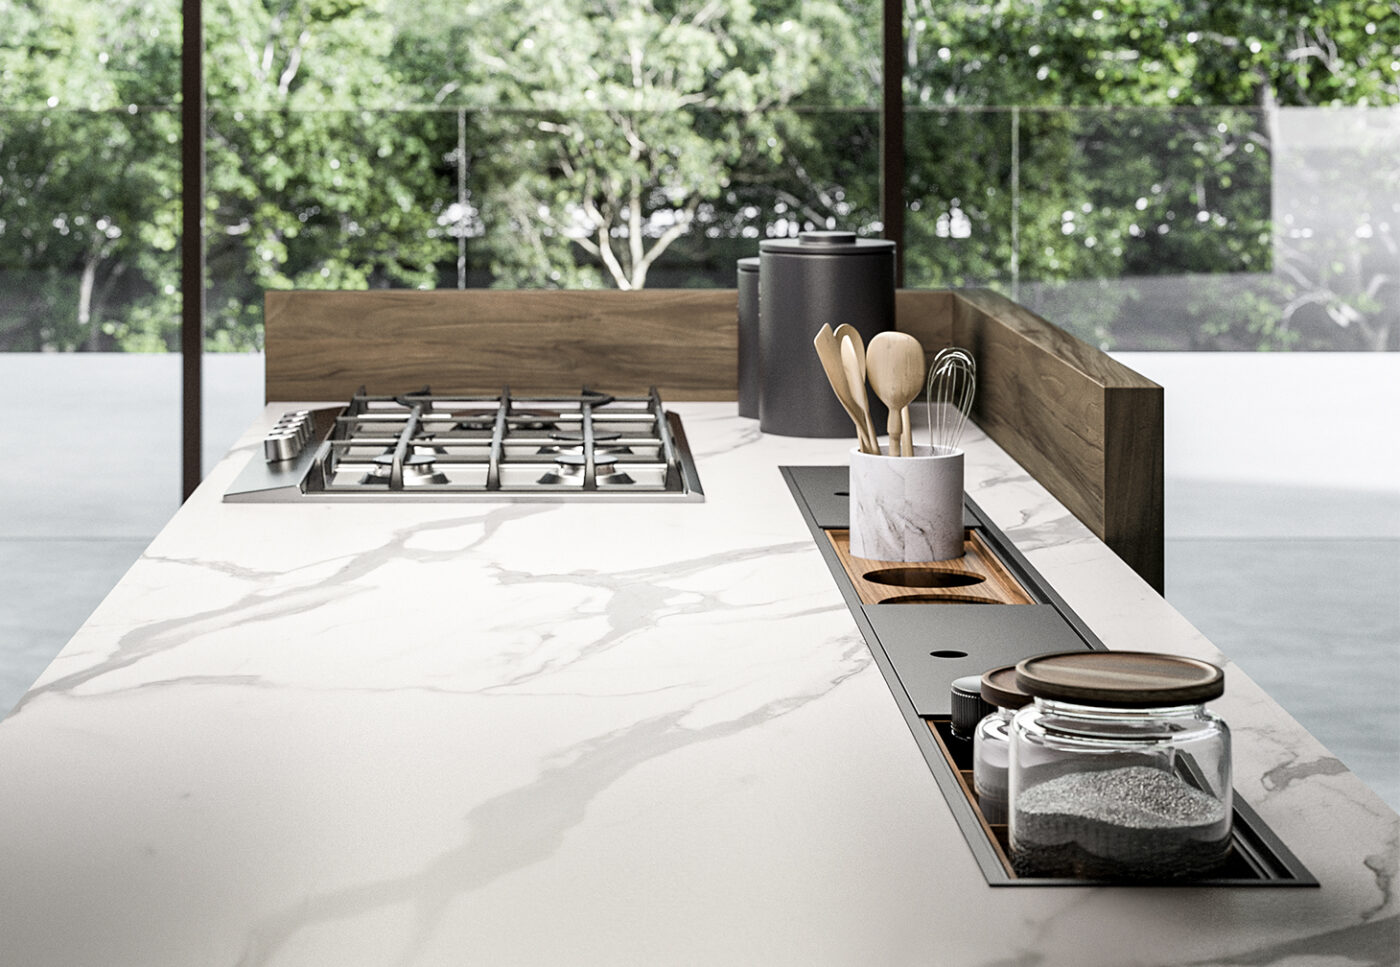 Modus: equipped channels for the Arredo3 kitchen - 2